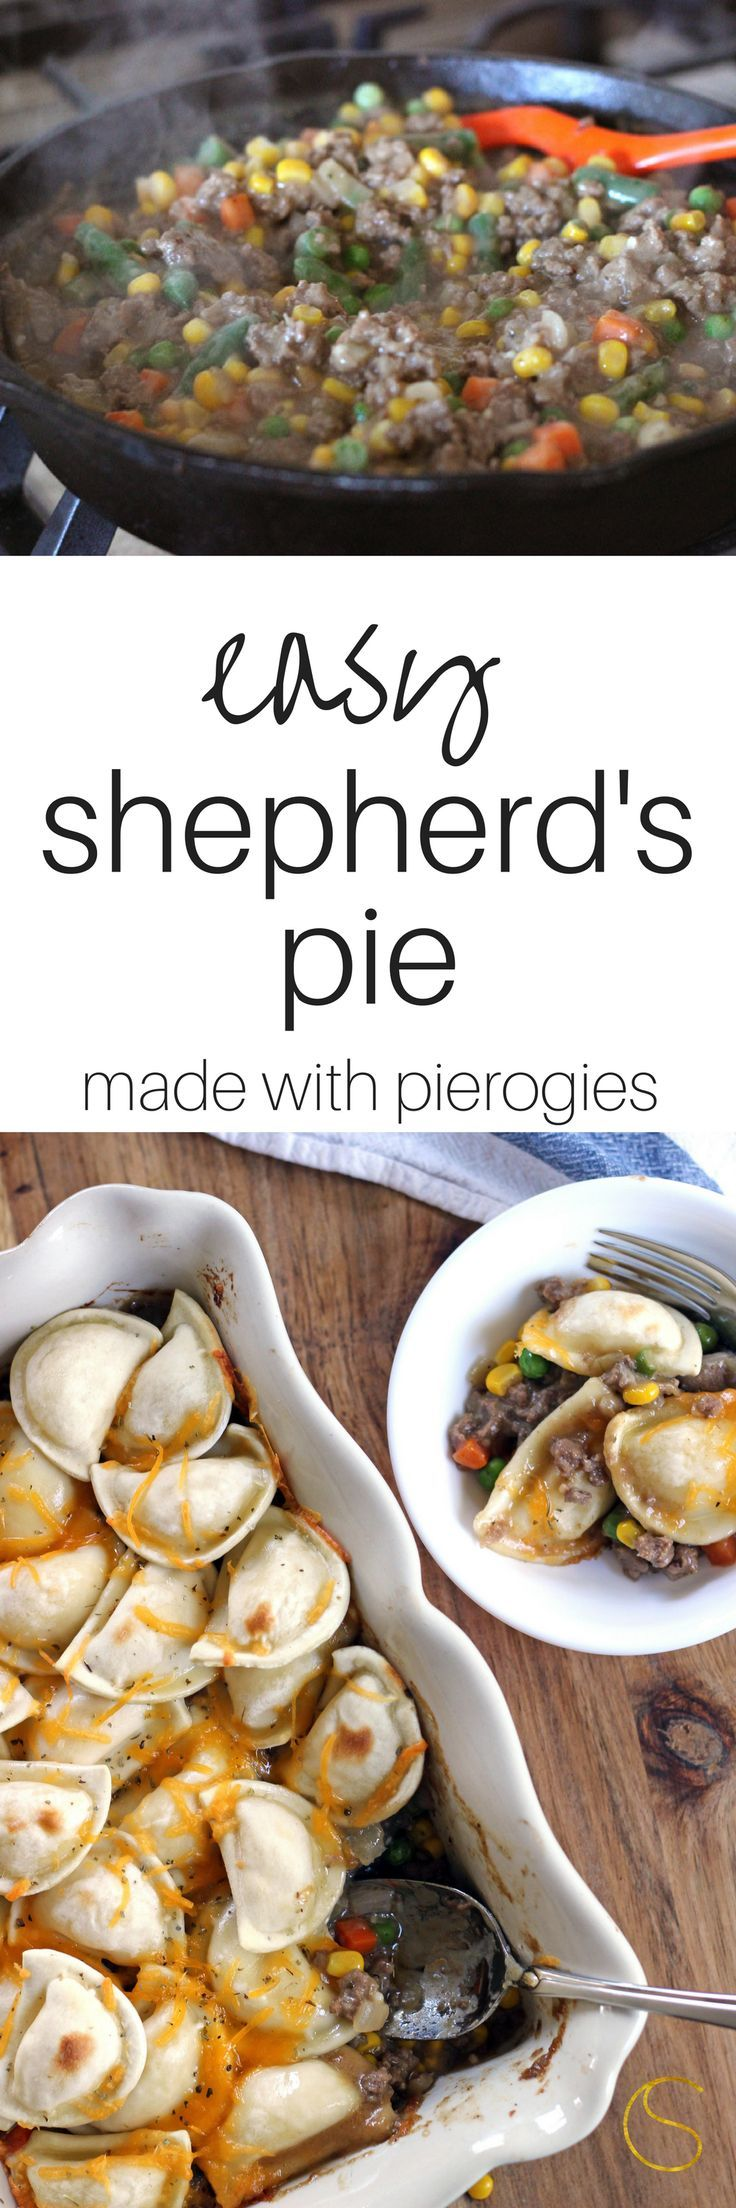 This easy shepherds pie recipe with made with Mrs. T's Pierogies!  It's so simple to make and the sauce is from scratch - no canned soup!  Dinner is ready!  #ad